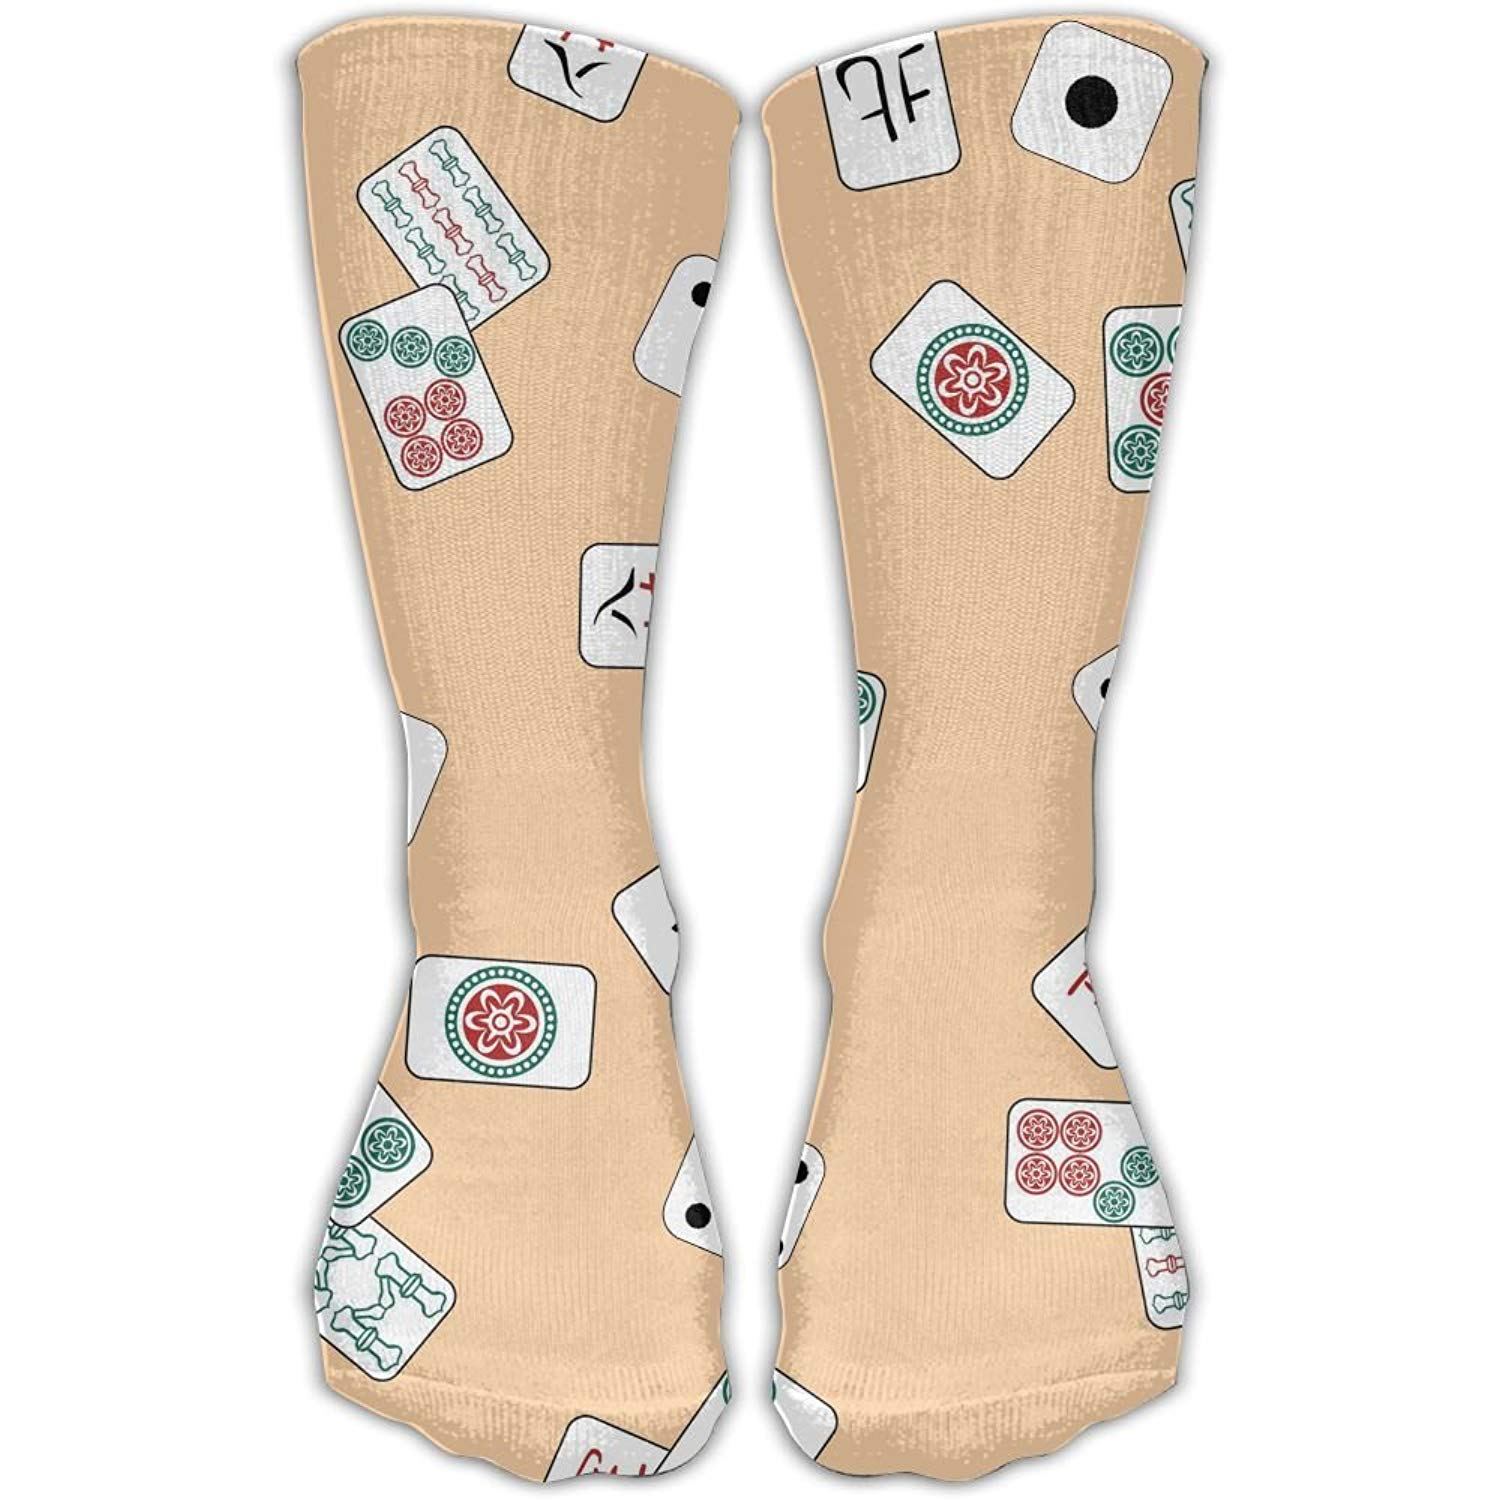 791c77722 Get Quotations · XYMNZGS Mahjong Fun Womens Socks Mens Dress Crew Socks  Softball Women's Socks